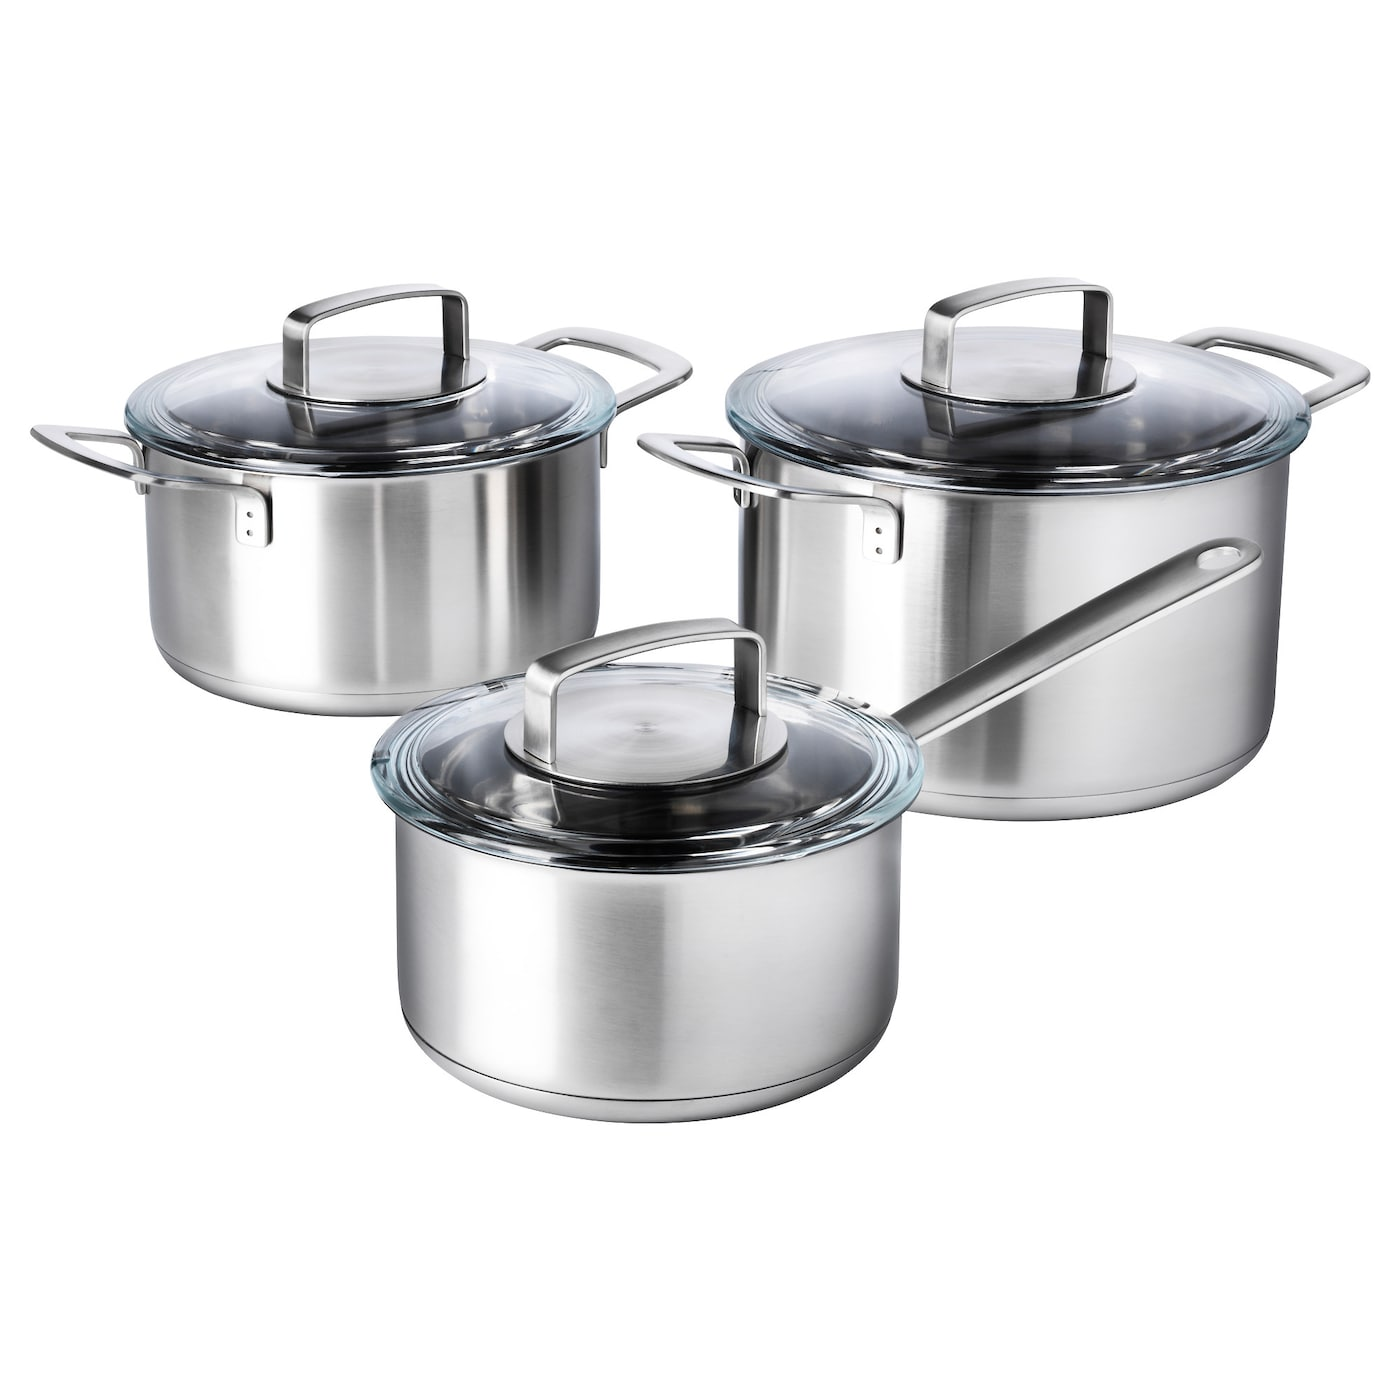 Ikea 365 6 piece cookware set stainless steel glass ikea for Art cuisine cookware